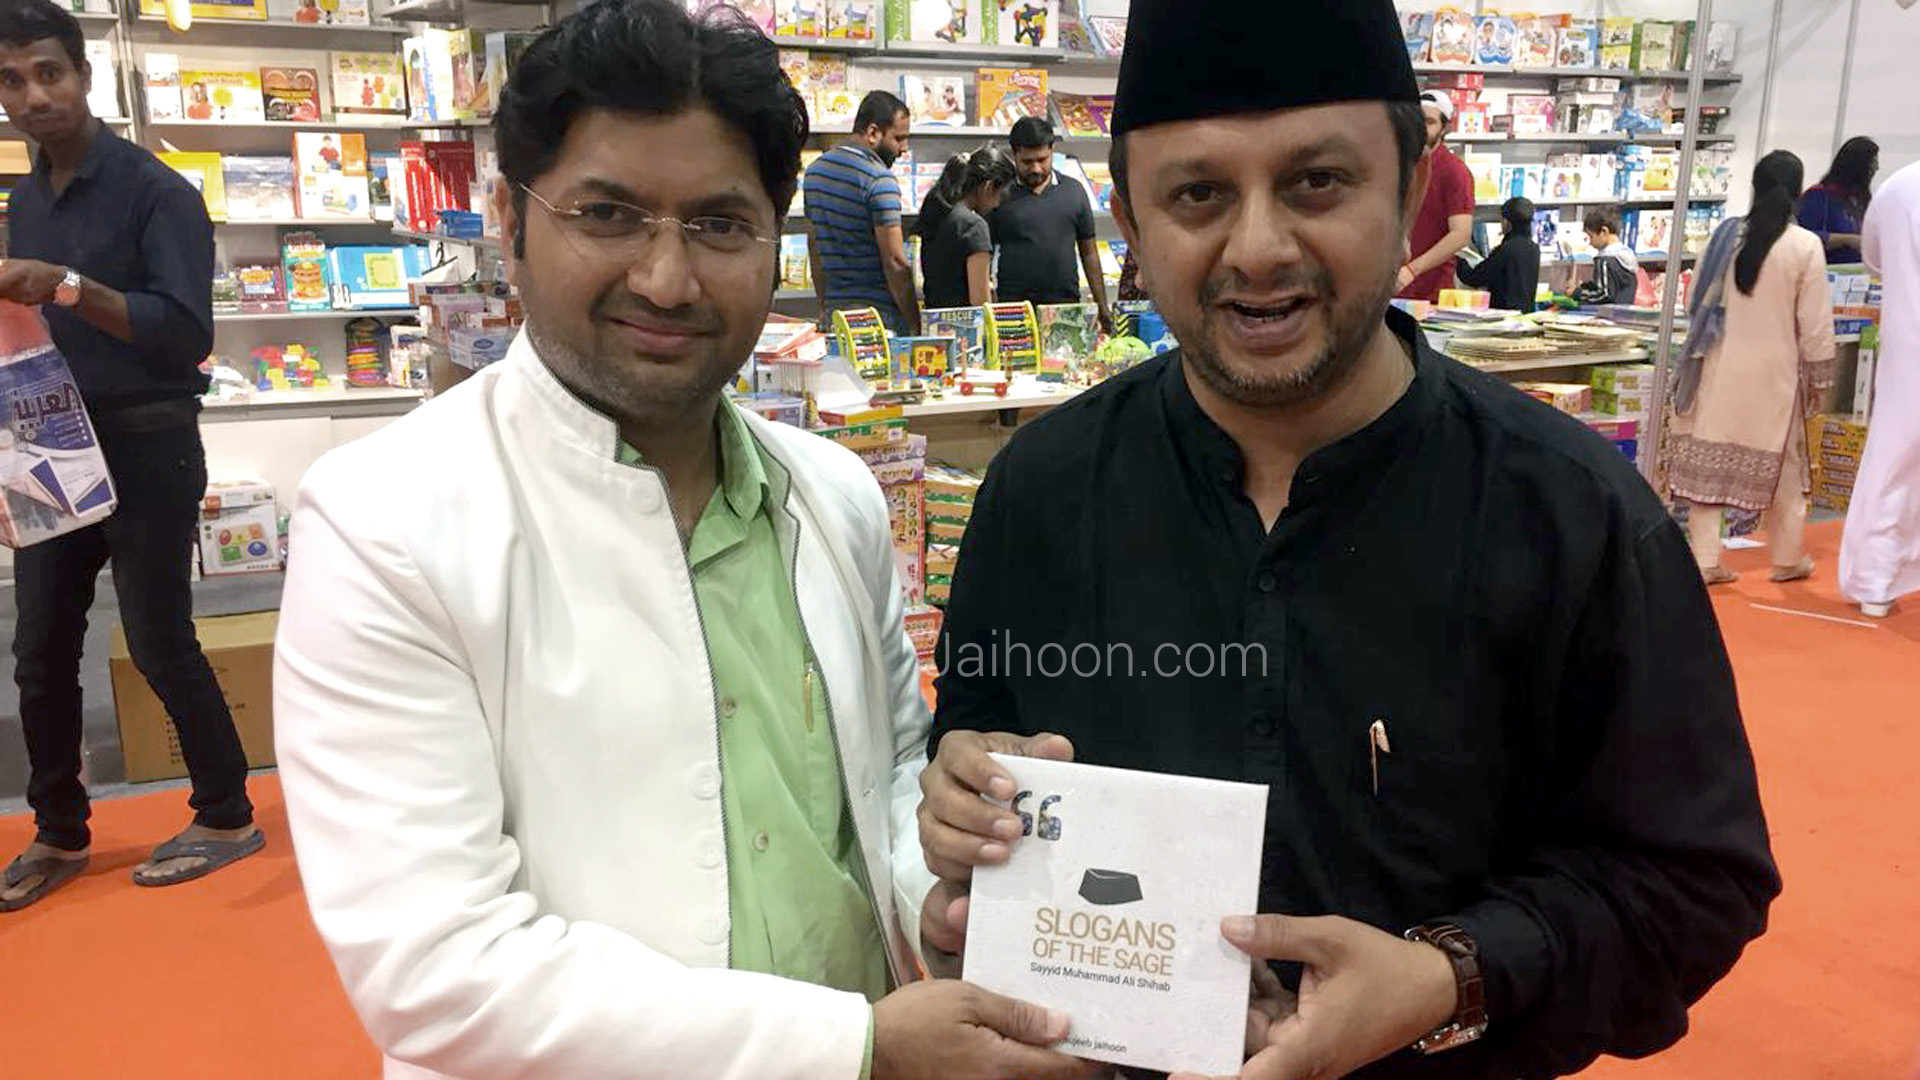 Presenting a copy of the book, Slogans of the Sage, to Sayyid Abbas Ali Shihab, brother of late Sayyid Muhammad Ali Shihab